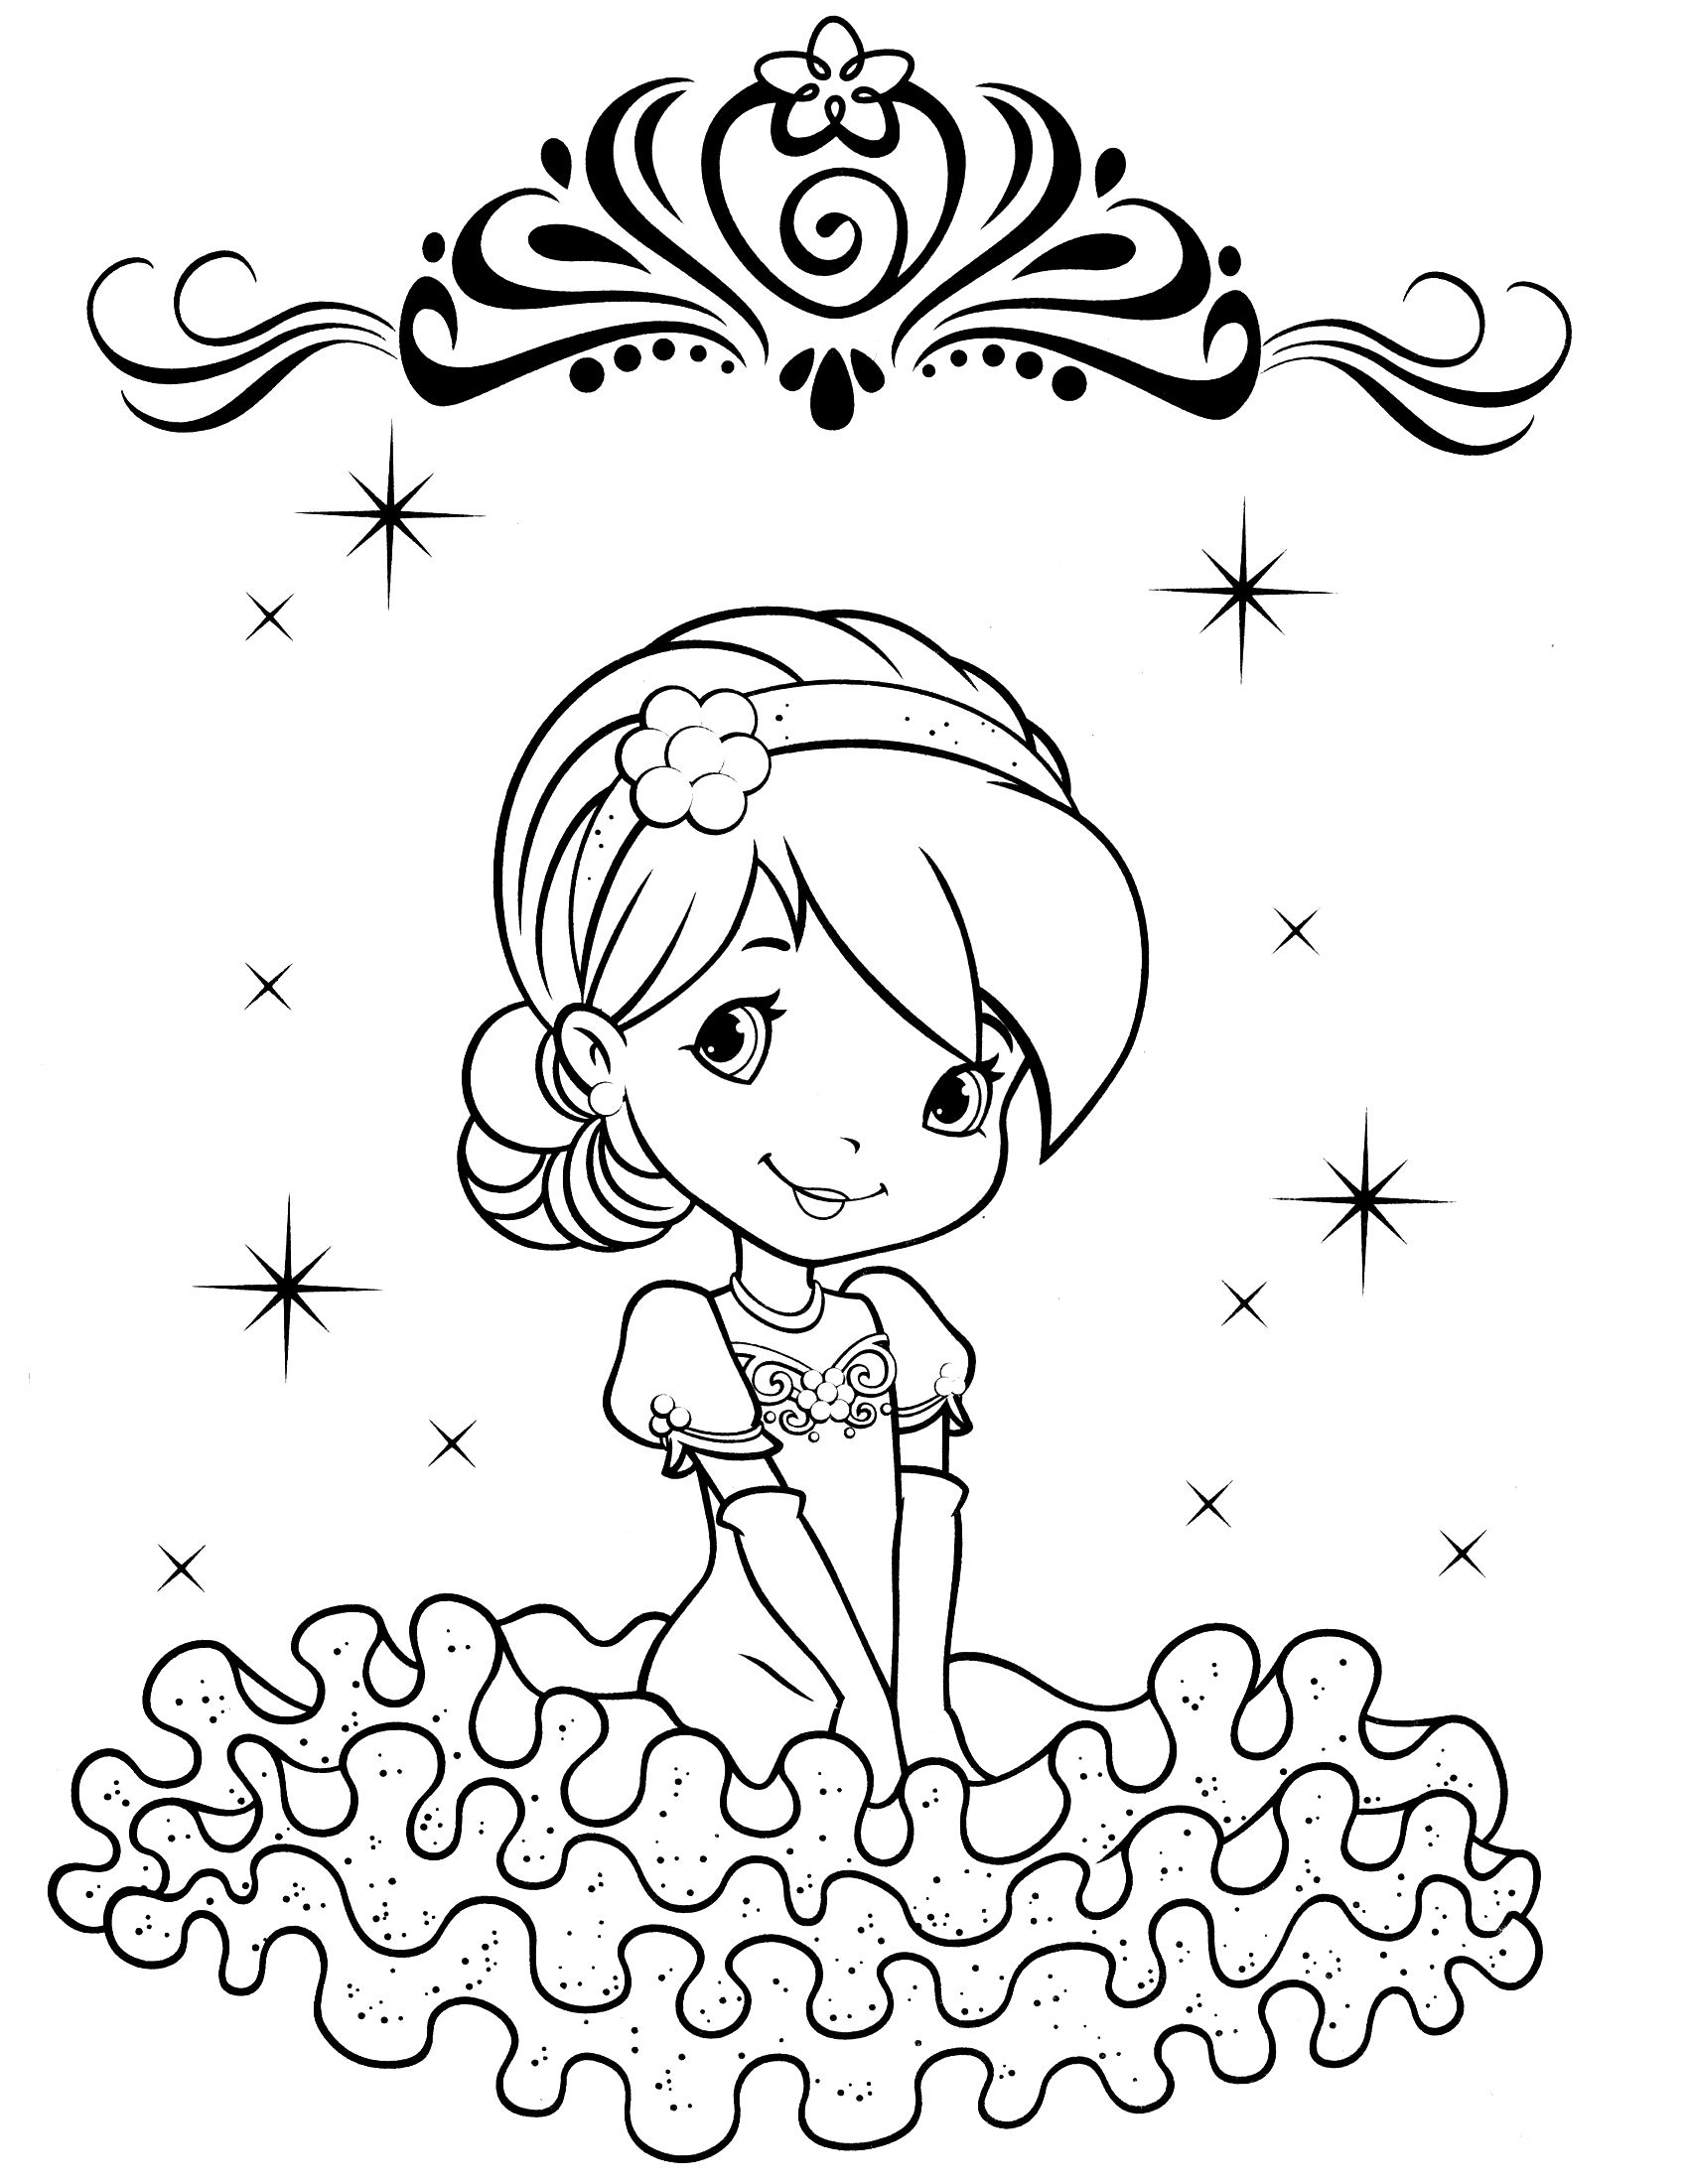 explore strawberry shortcake coloring book and more